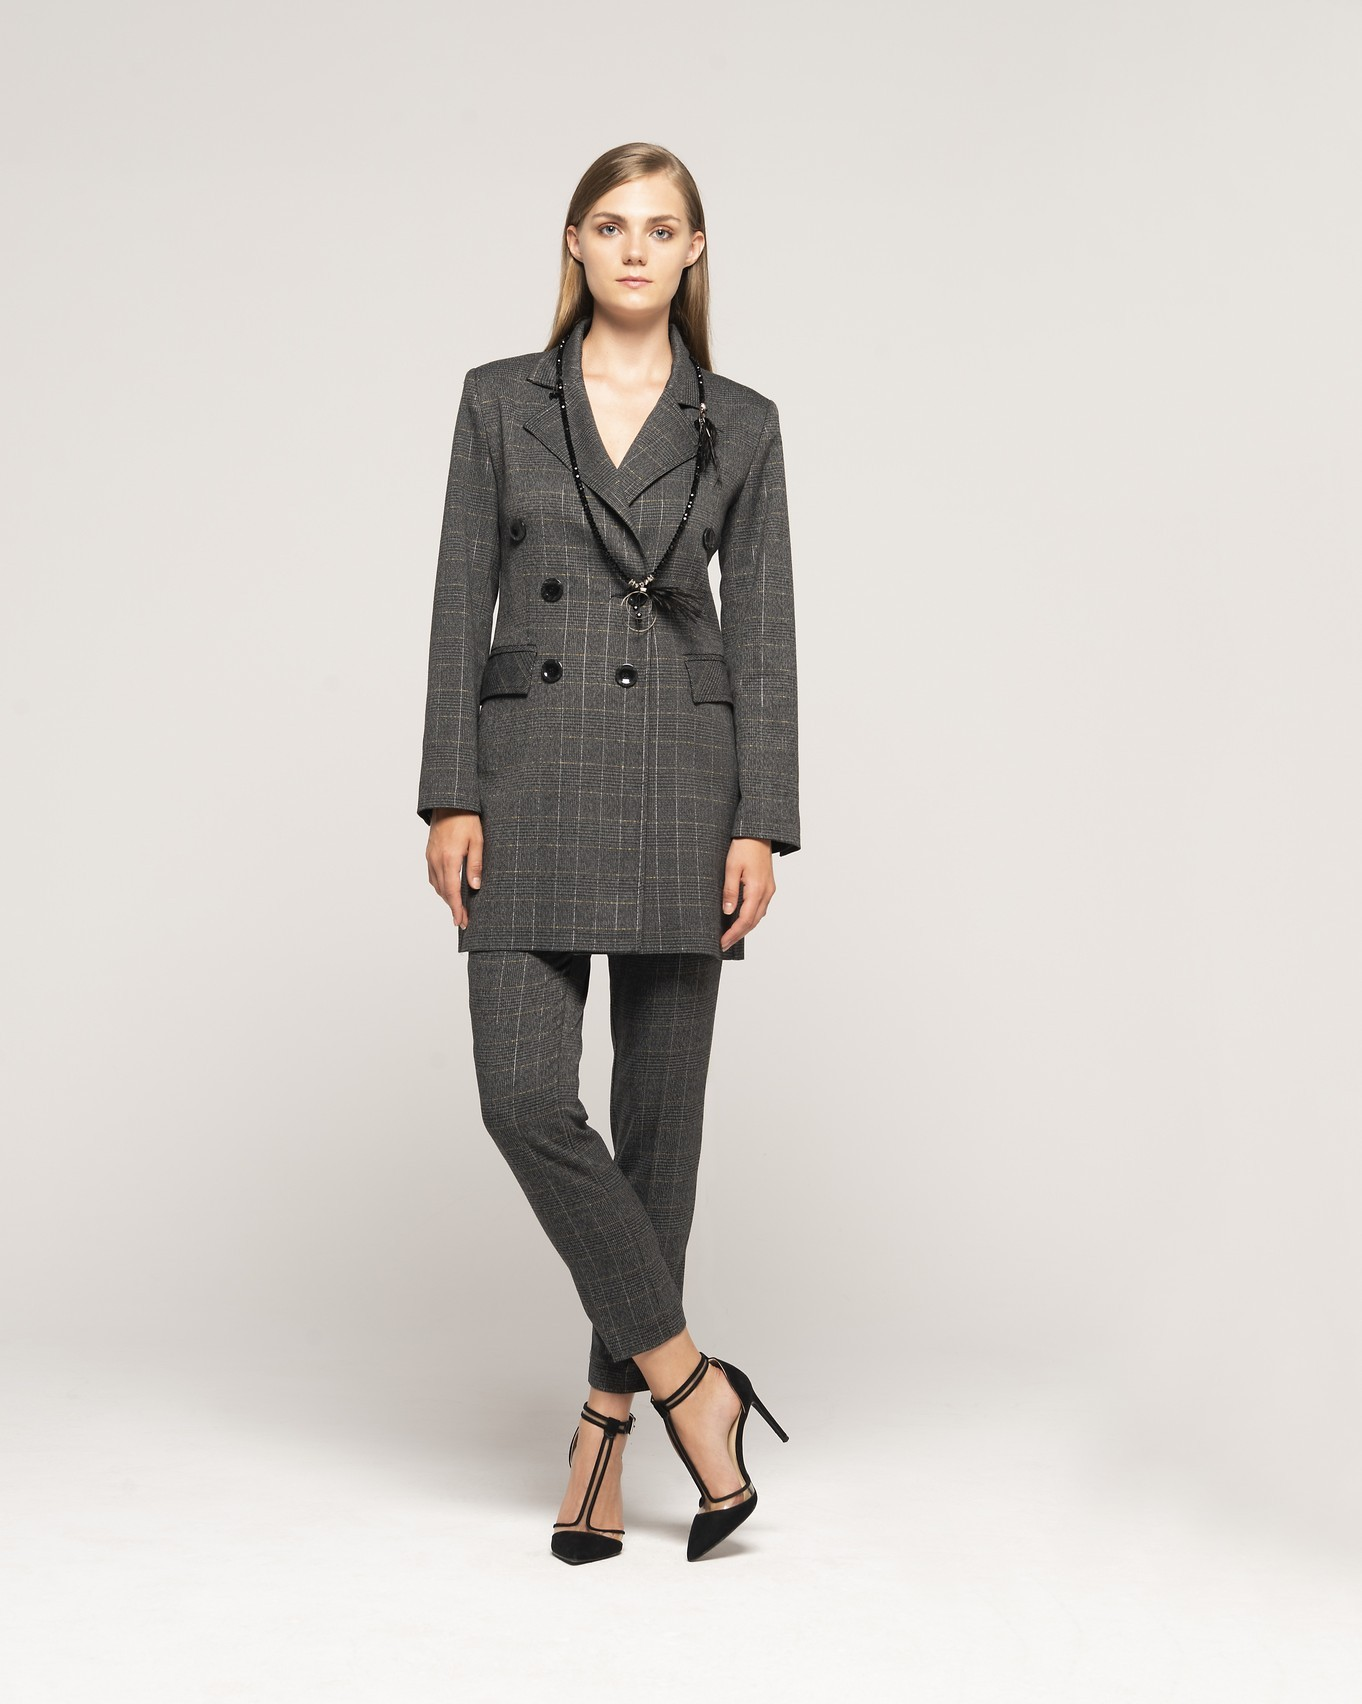 JACKET 603 - TROUSERS 106 - NECKLACE C365.jpg